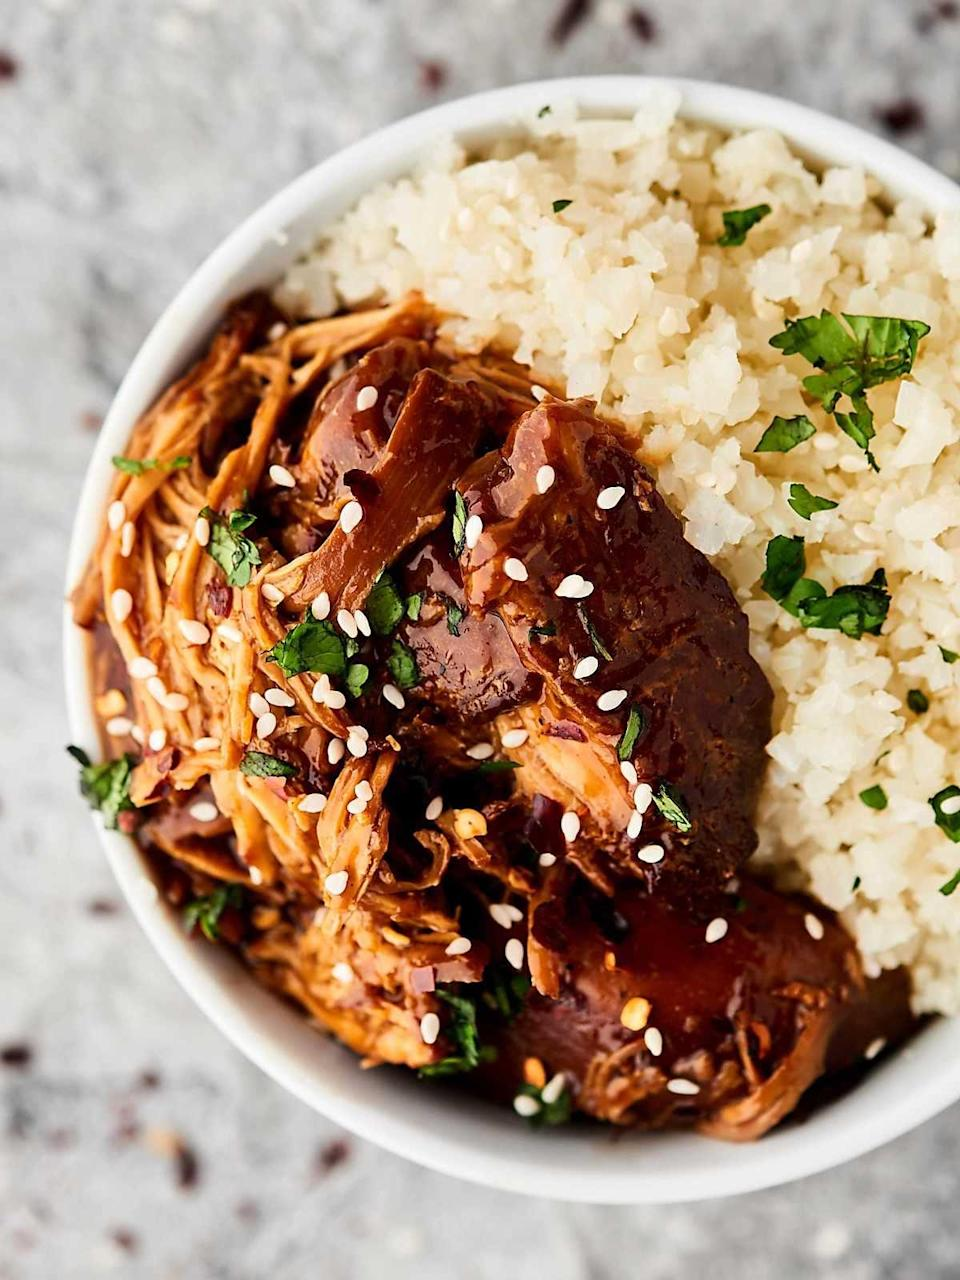 """<p>Make teriyaki chicken in the comfort of your own home when you chef up this delicious dinner. The slow cooker does most of the work, meaning all you have to do is sit back, relax, and enjoy a mouthwatering dinner. Type in the amount of servings you want to make where it says """"yield"""" so you don't end up with too many leftovers!</p> <p><strong>Get the recipe:</strong> <a href=""""https://showmetheyummy.com/slow-cooker-teriyaki-chicken-recipe/"""" class=""""link rapid-noclick-resp"""" rel=""""nofollow noopener"""" target=""""_blank"""" data-ylk=""""slk:crockpot teriyaki chicken"""">crockpot teriyaki chicken</a></p>"""